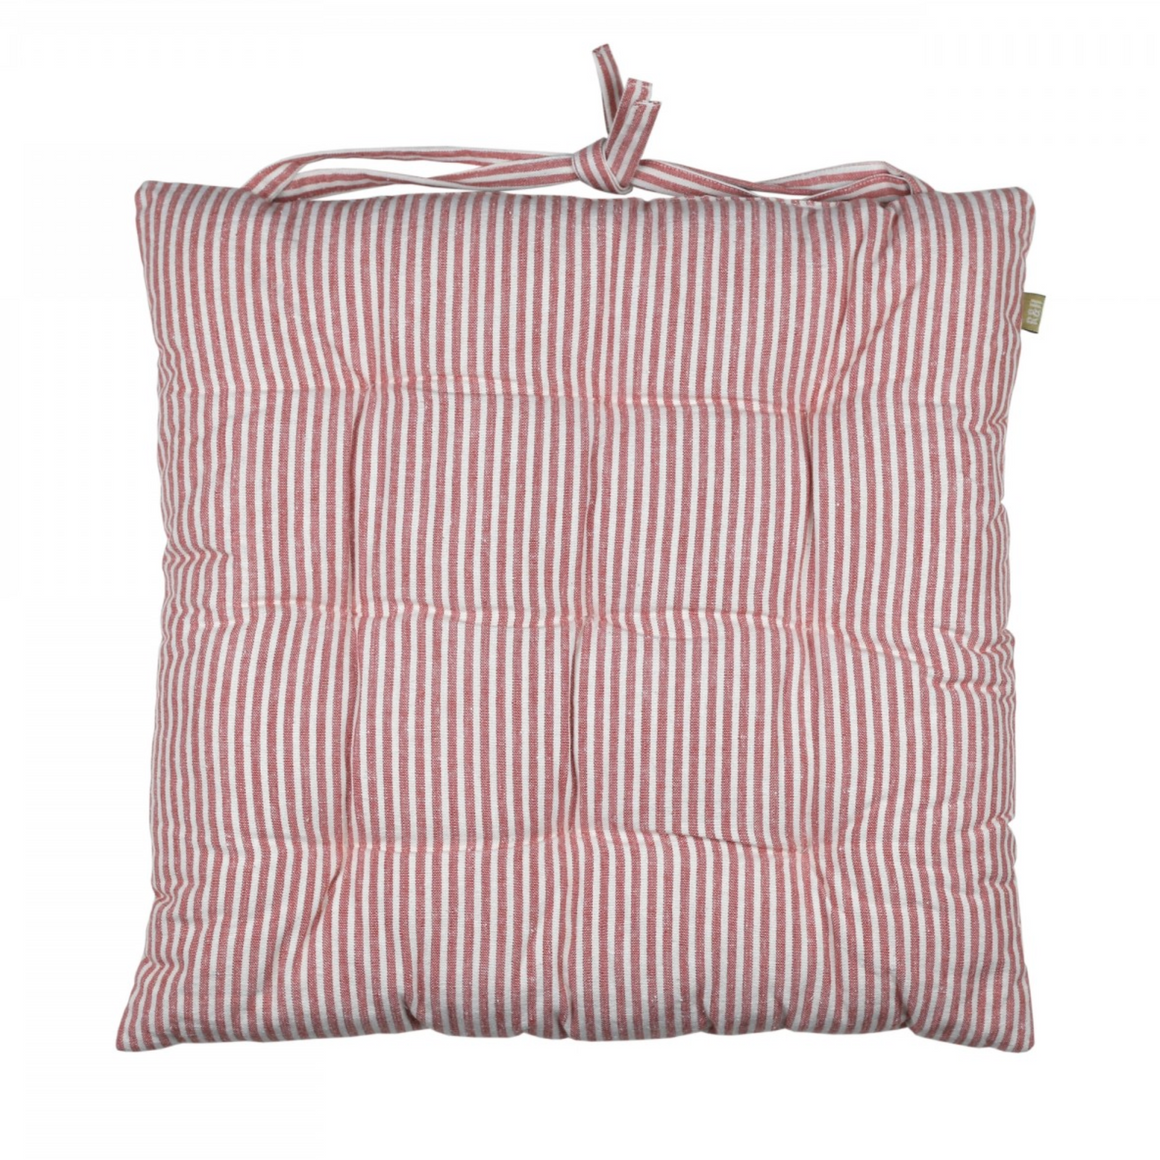 ABBEY STRIPE SEAT PAD/CUSHION - TERRACOTTA